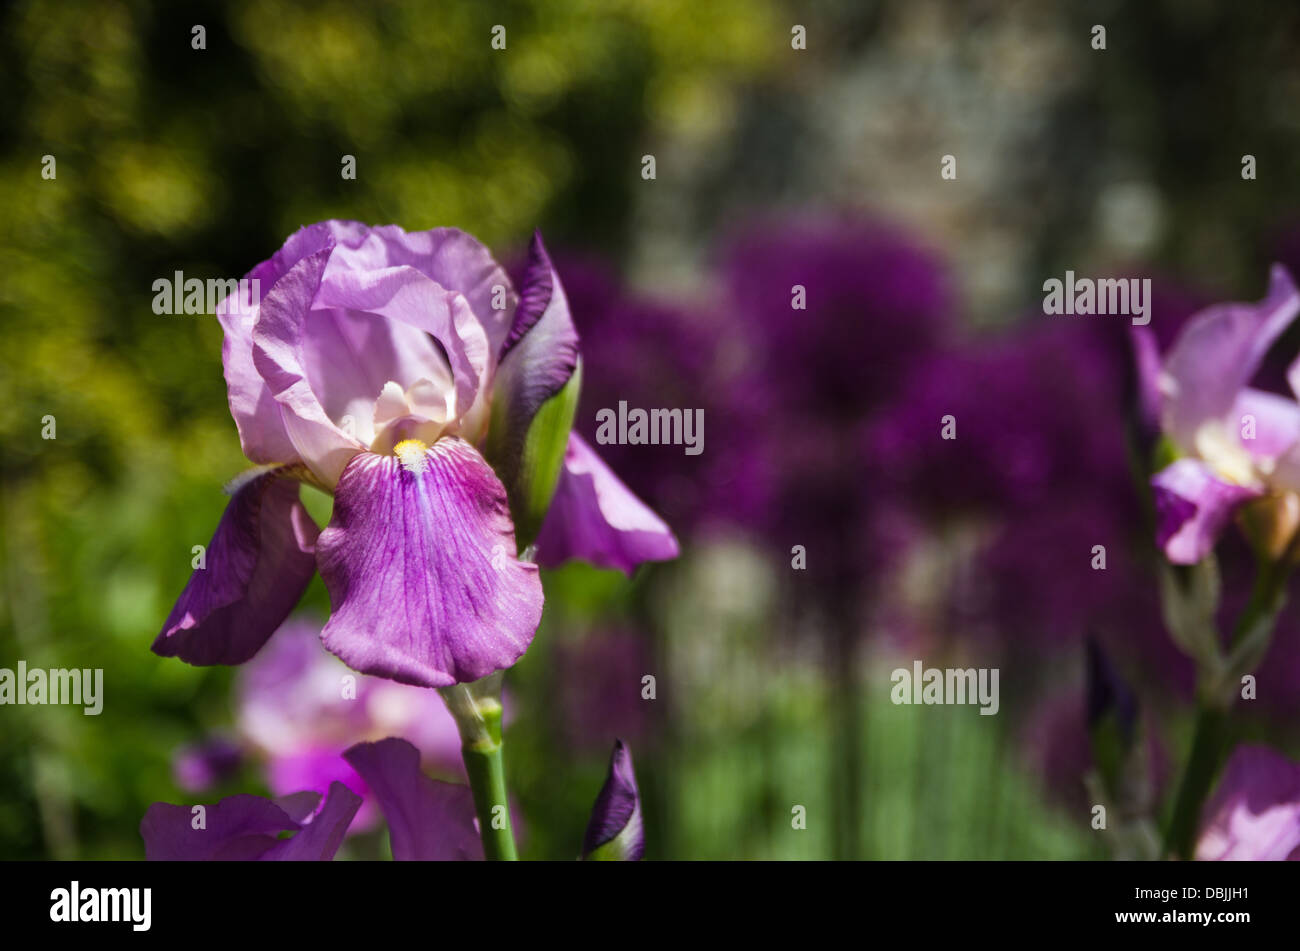 Purple Iris In A Flower Bed Stock Photo 58802045 Alamy